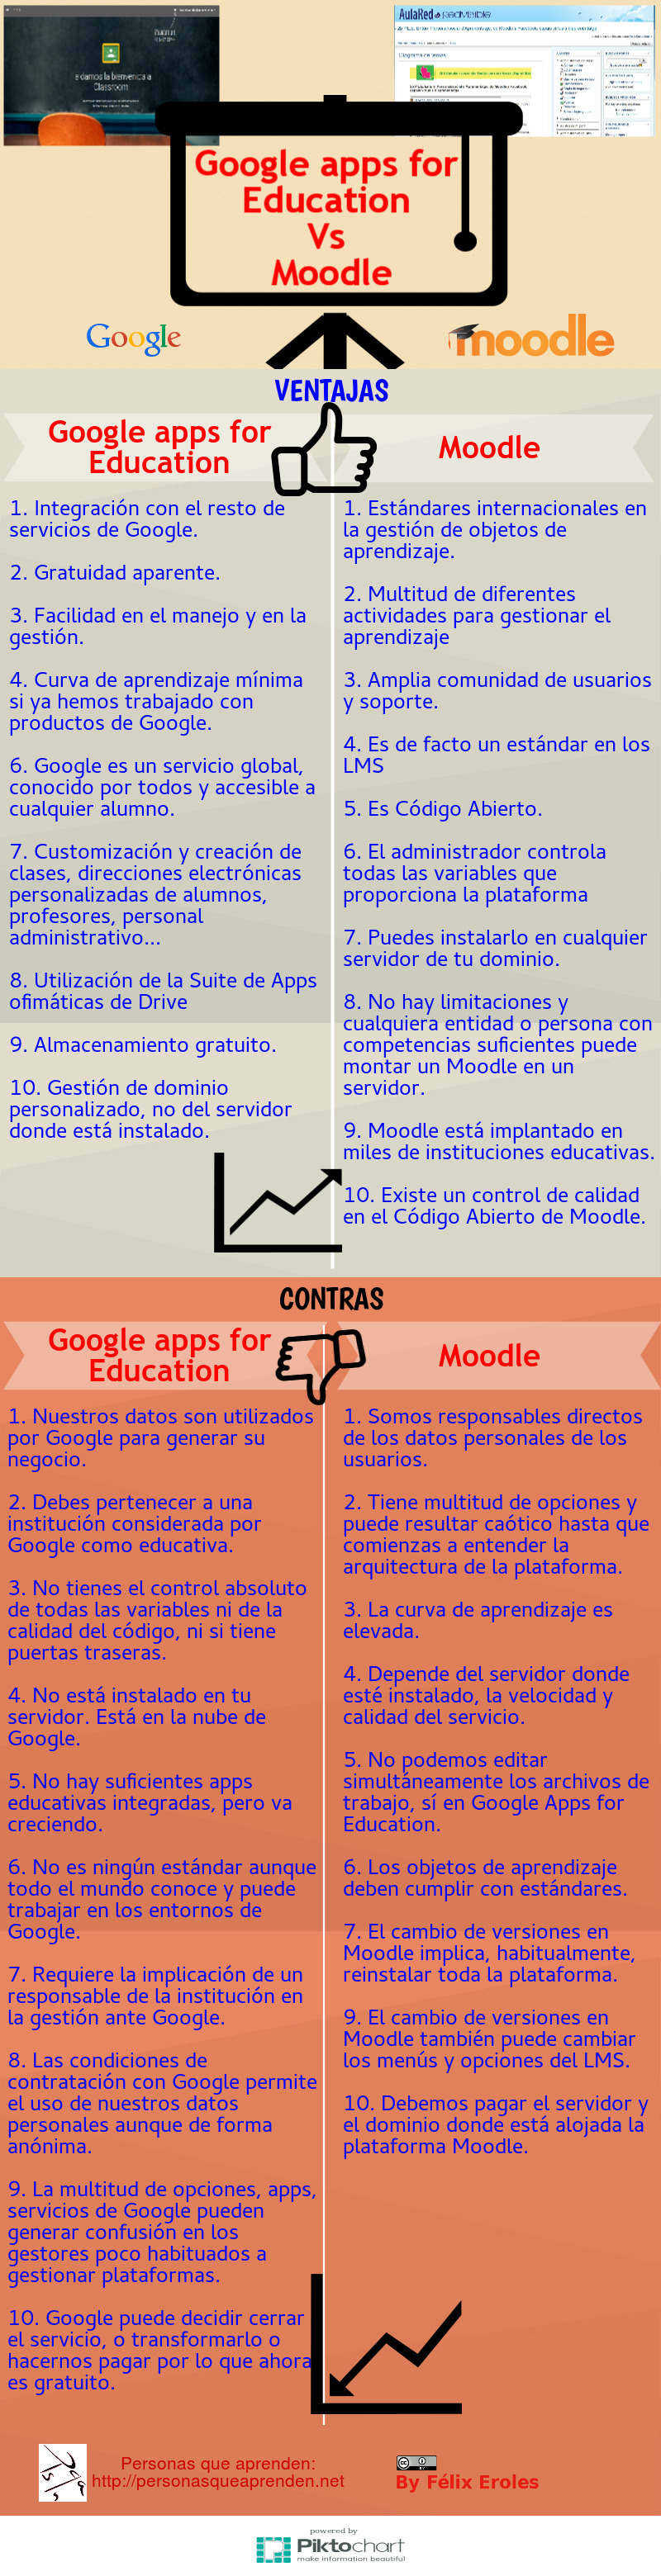 Google Apps for education vs Moodle